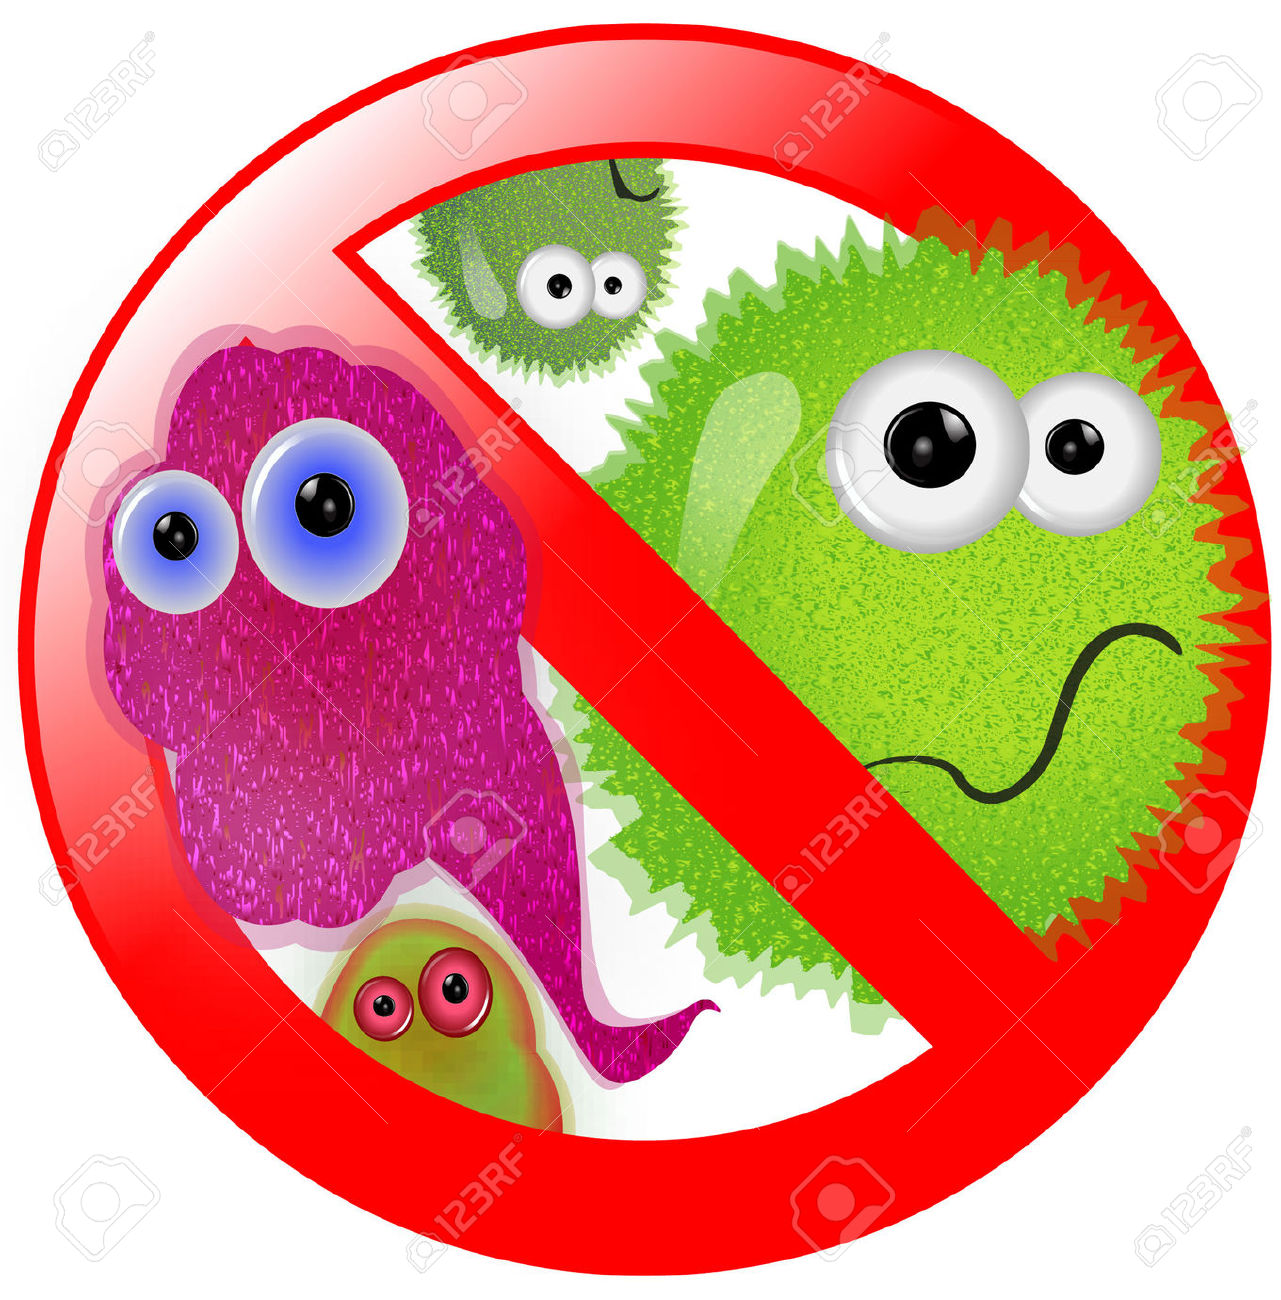 Germ clipart #2, Download drawings